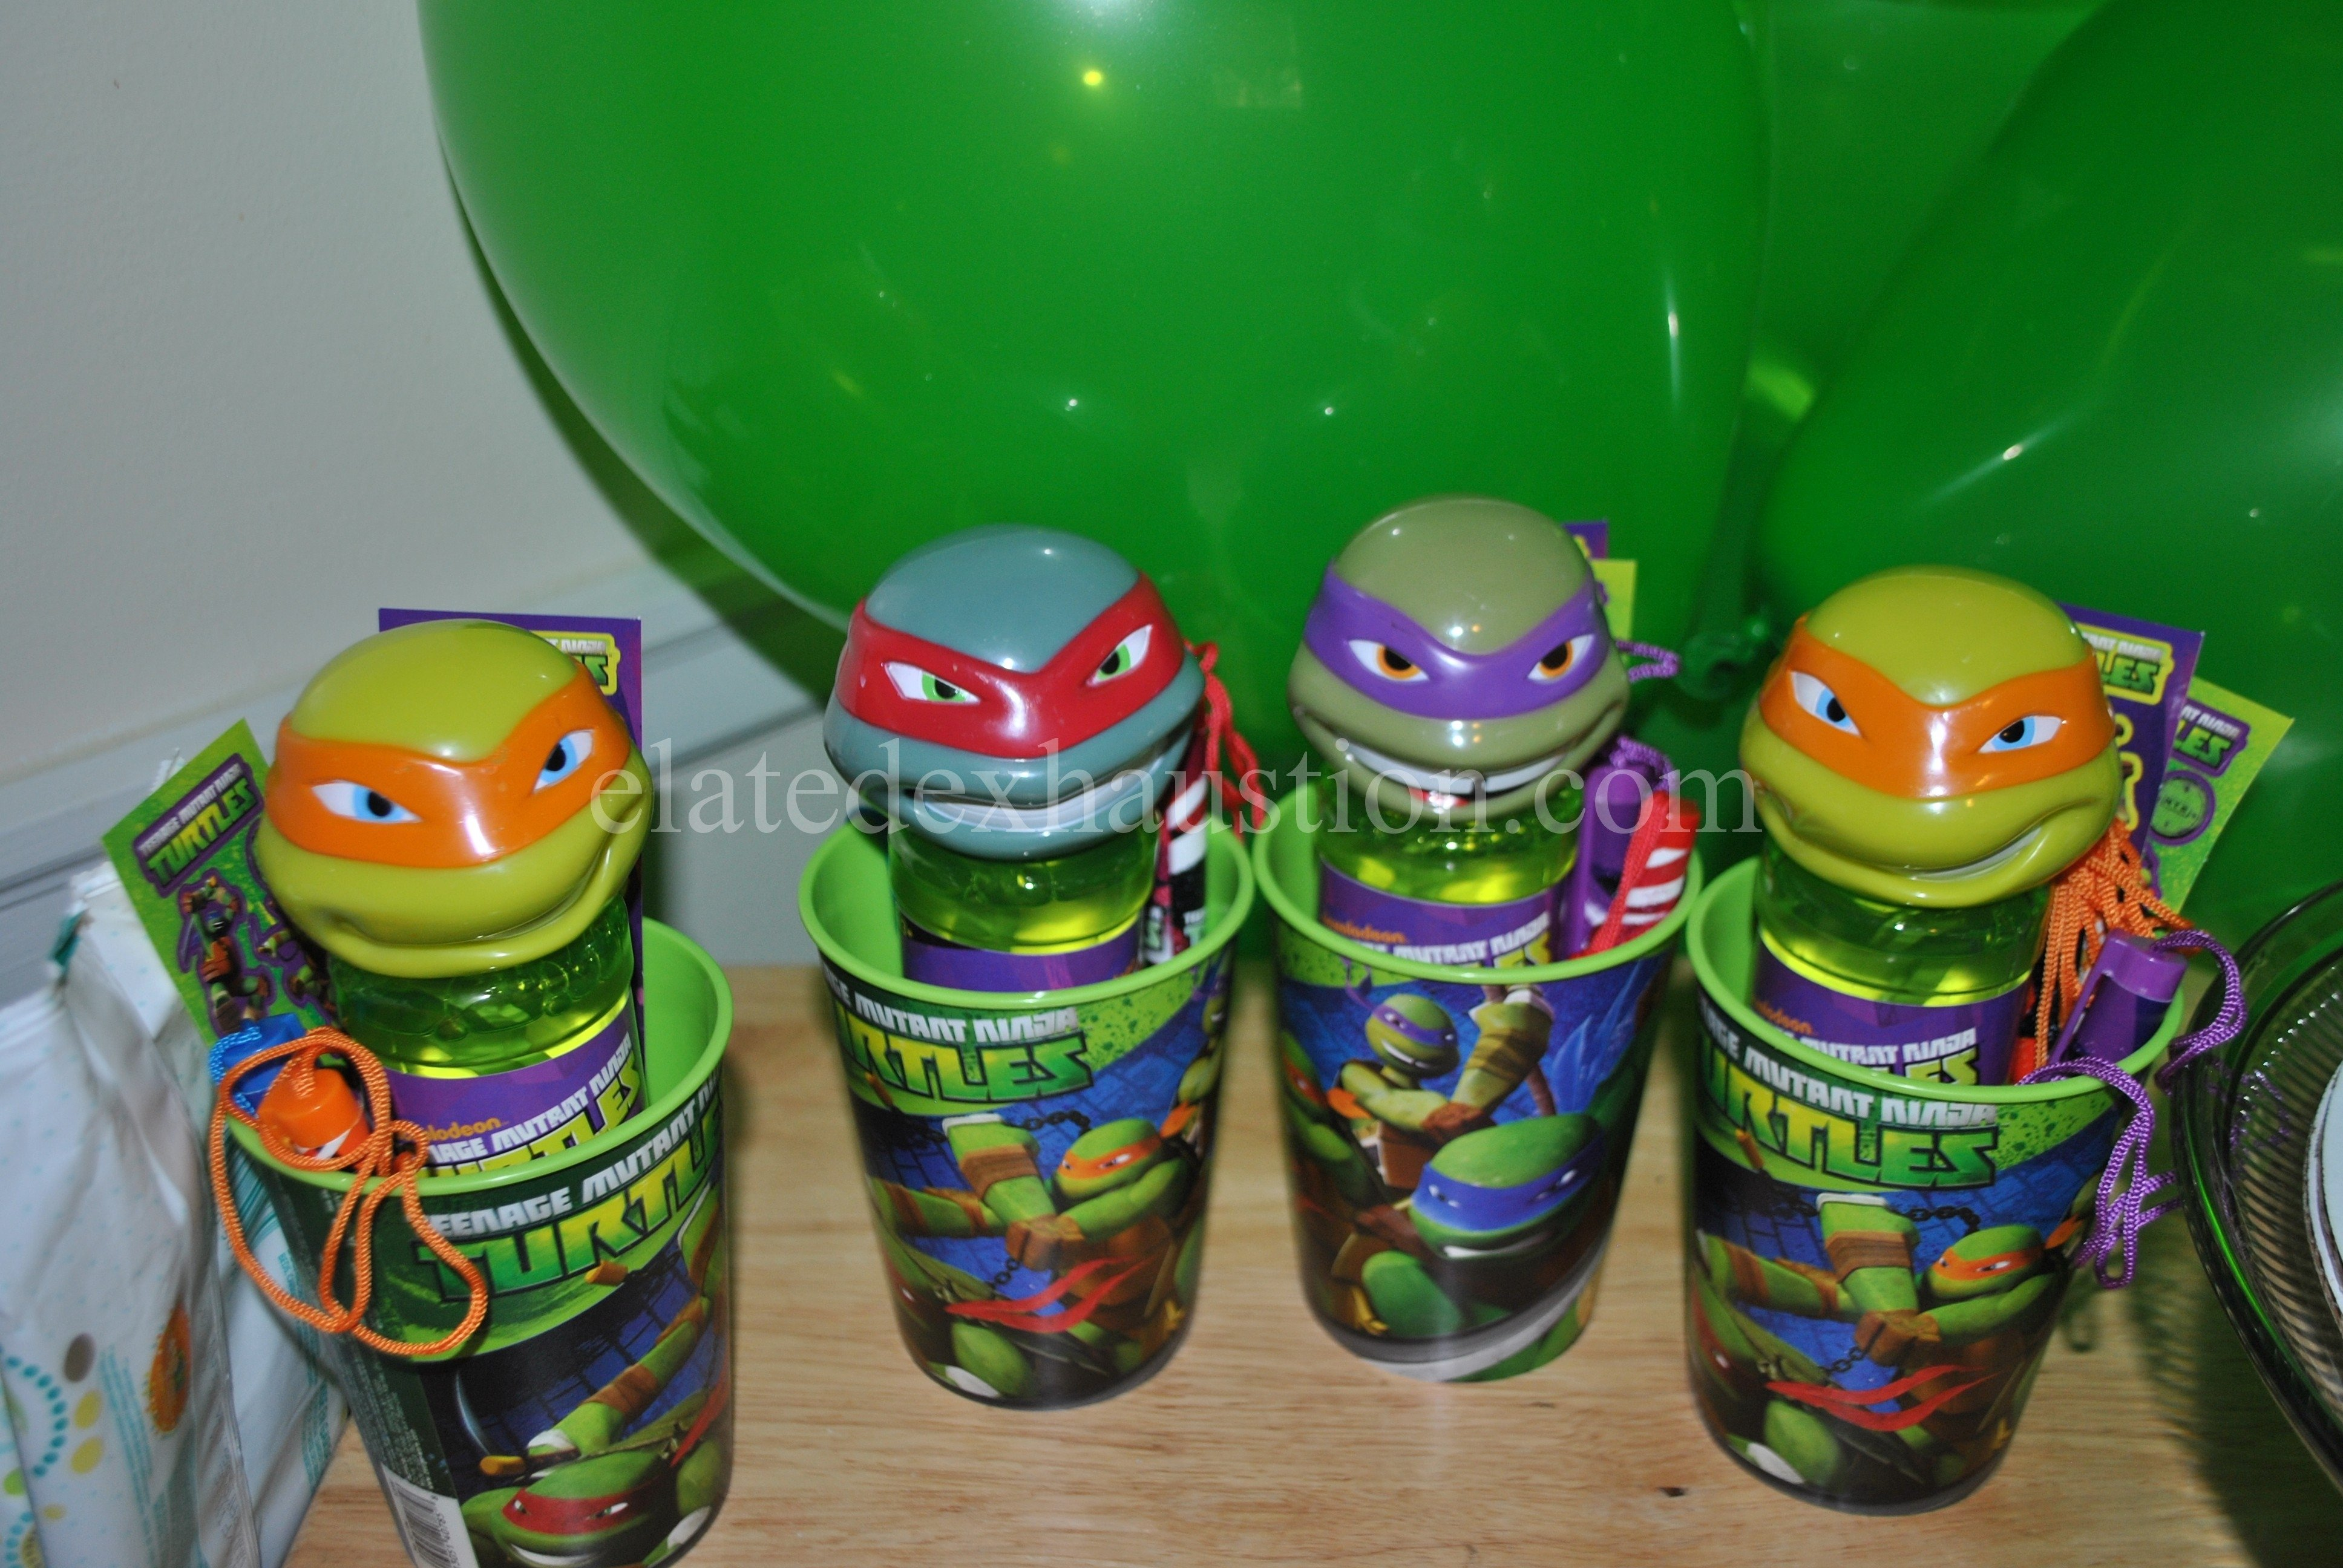 10 Best Ninja Turtle Party Decoration Ideas the fourth birthday party ninja turtle style elated exhaustion 2 2020